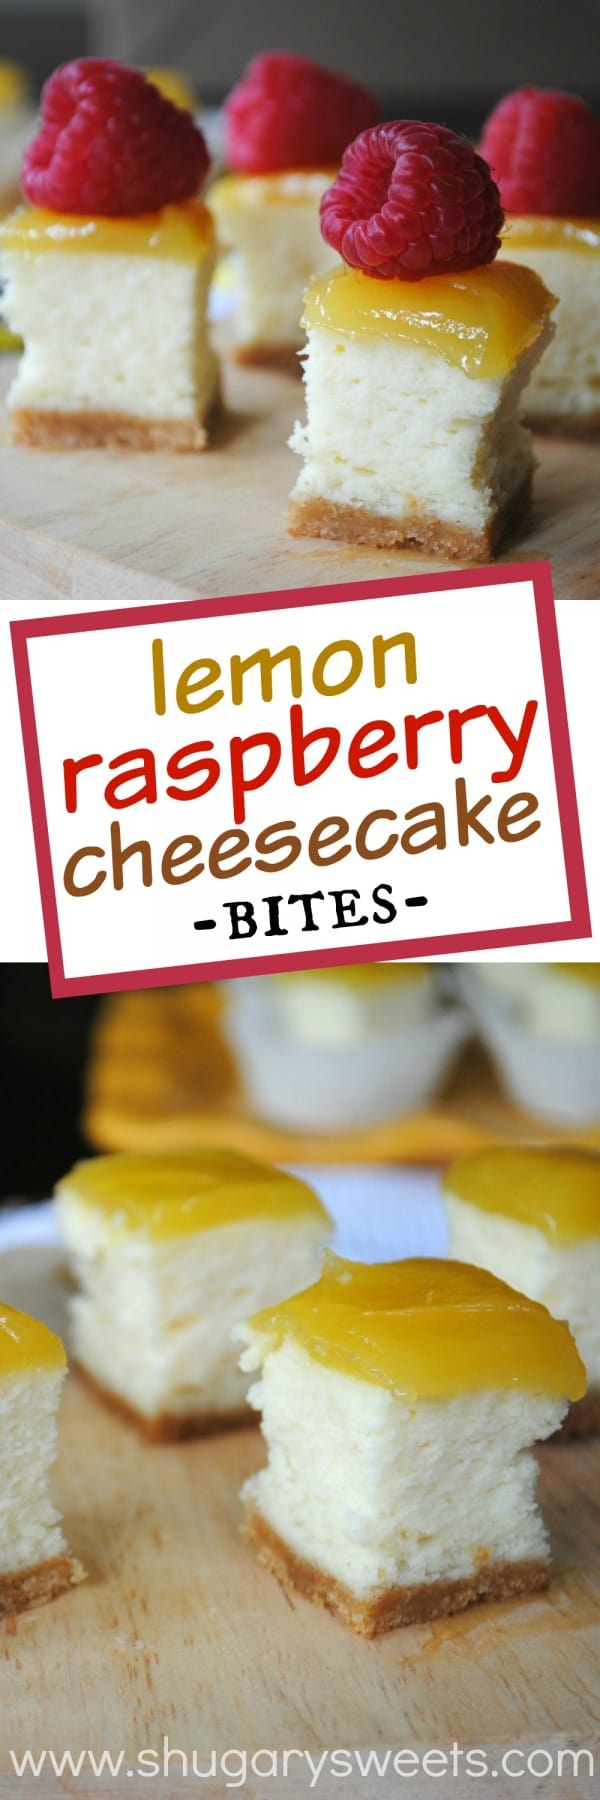 Lemon Cheesecake Bites with lemon curd on top! Add some fresh raspberries for a pop of color and flavor!